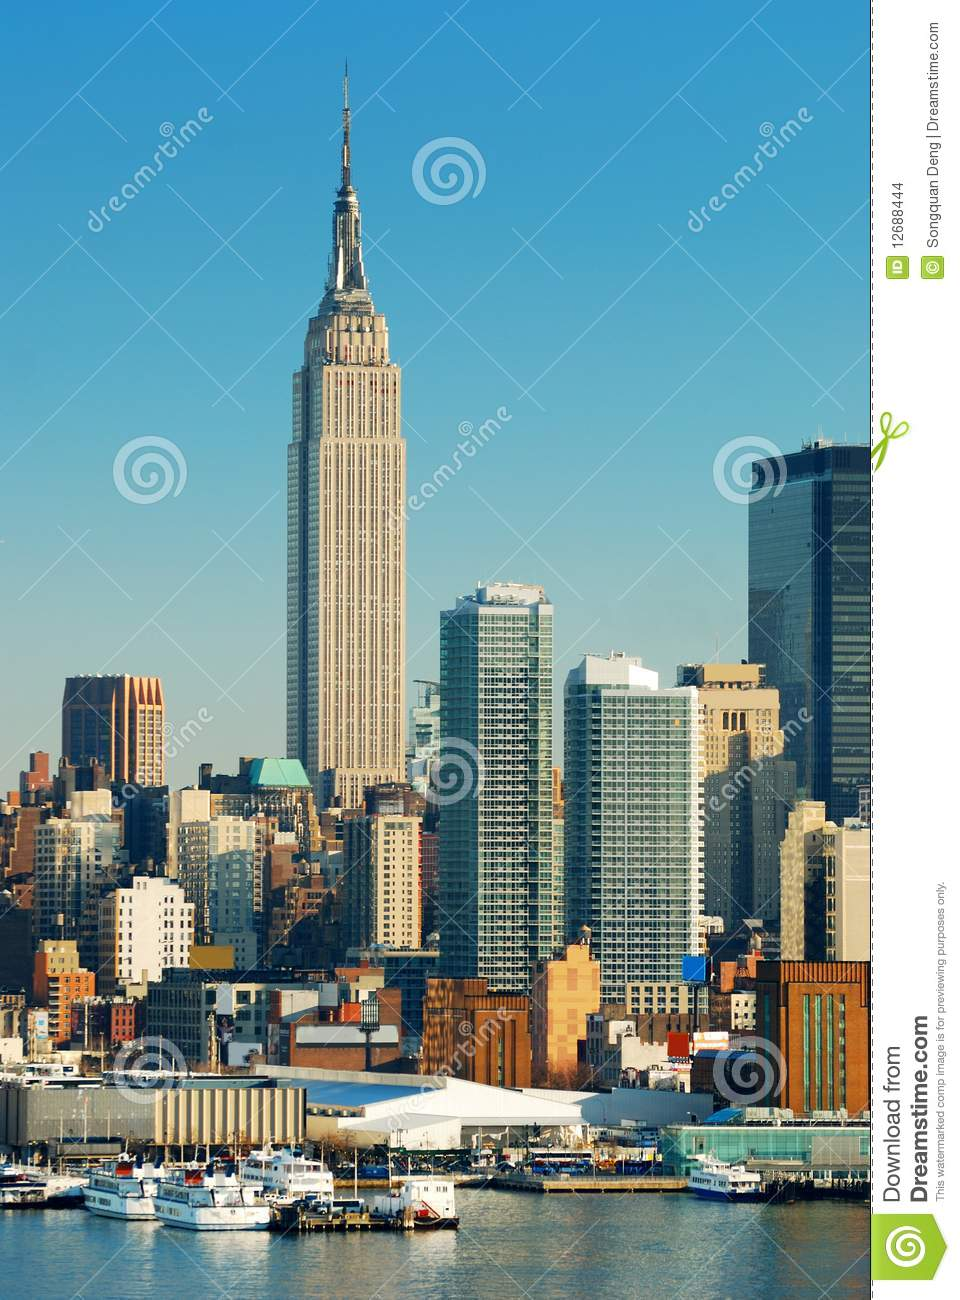 New York City Empire State Building Editorial Stock Image - Image of ferry, commute: 12688444